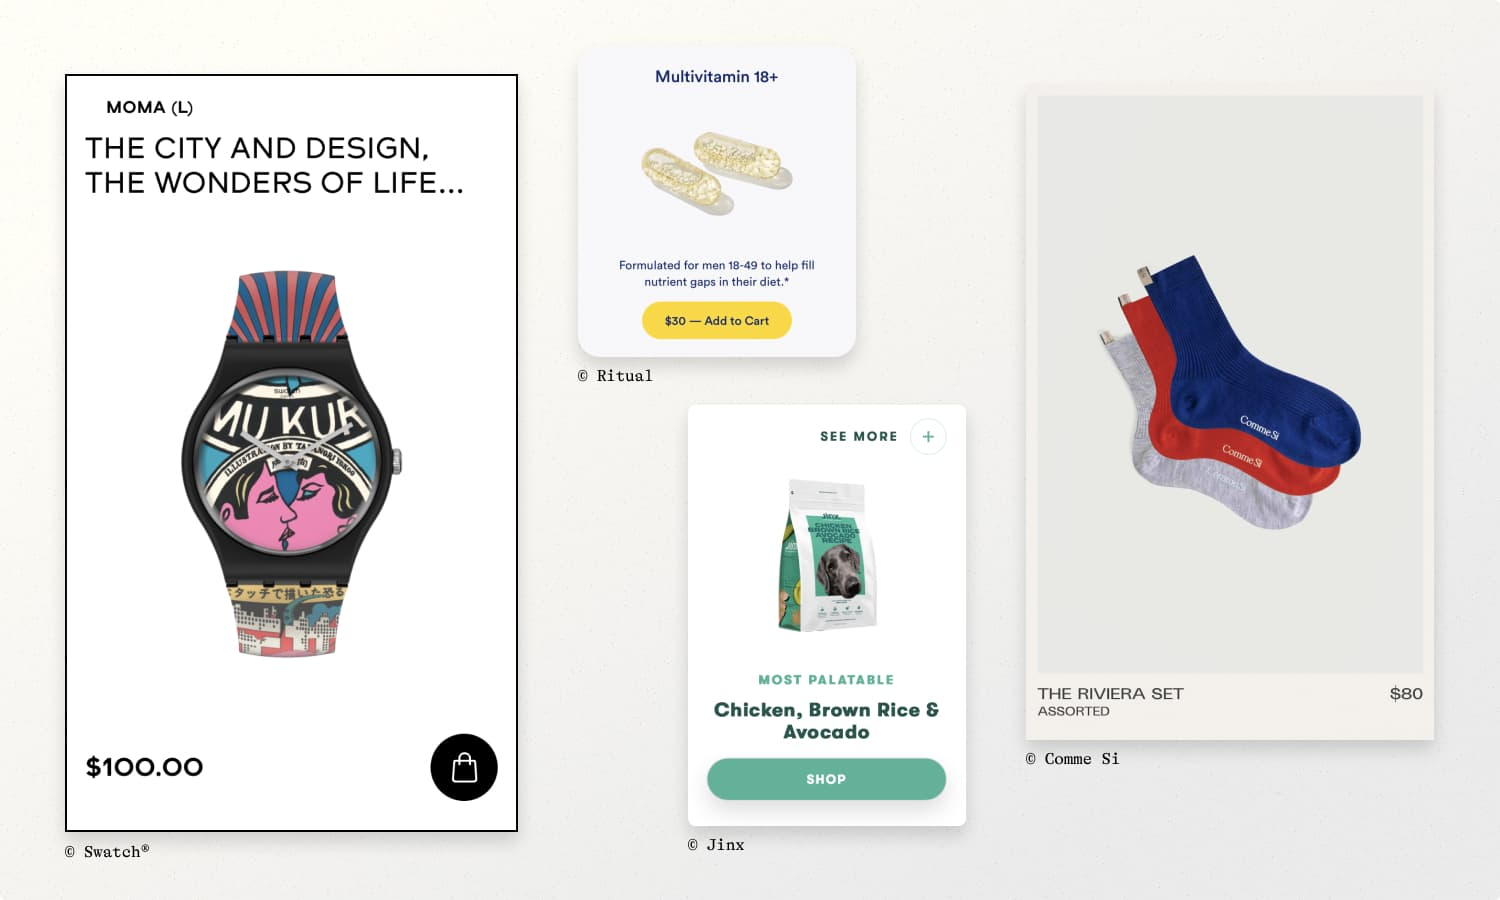 Product card examples from Swatch, Ritual, Jinx, & Comme Si